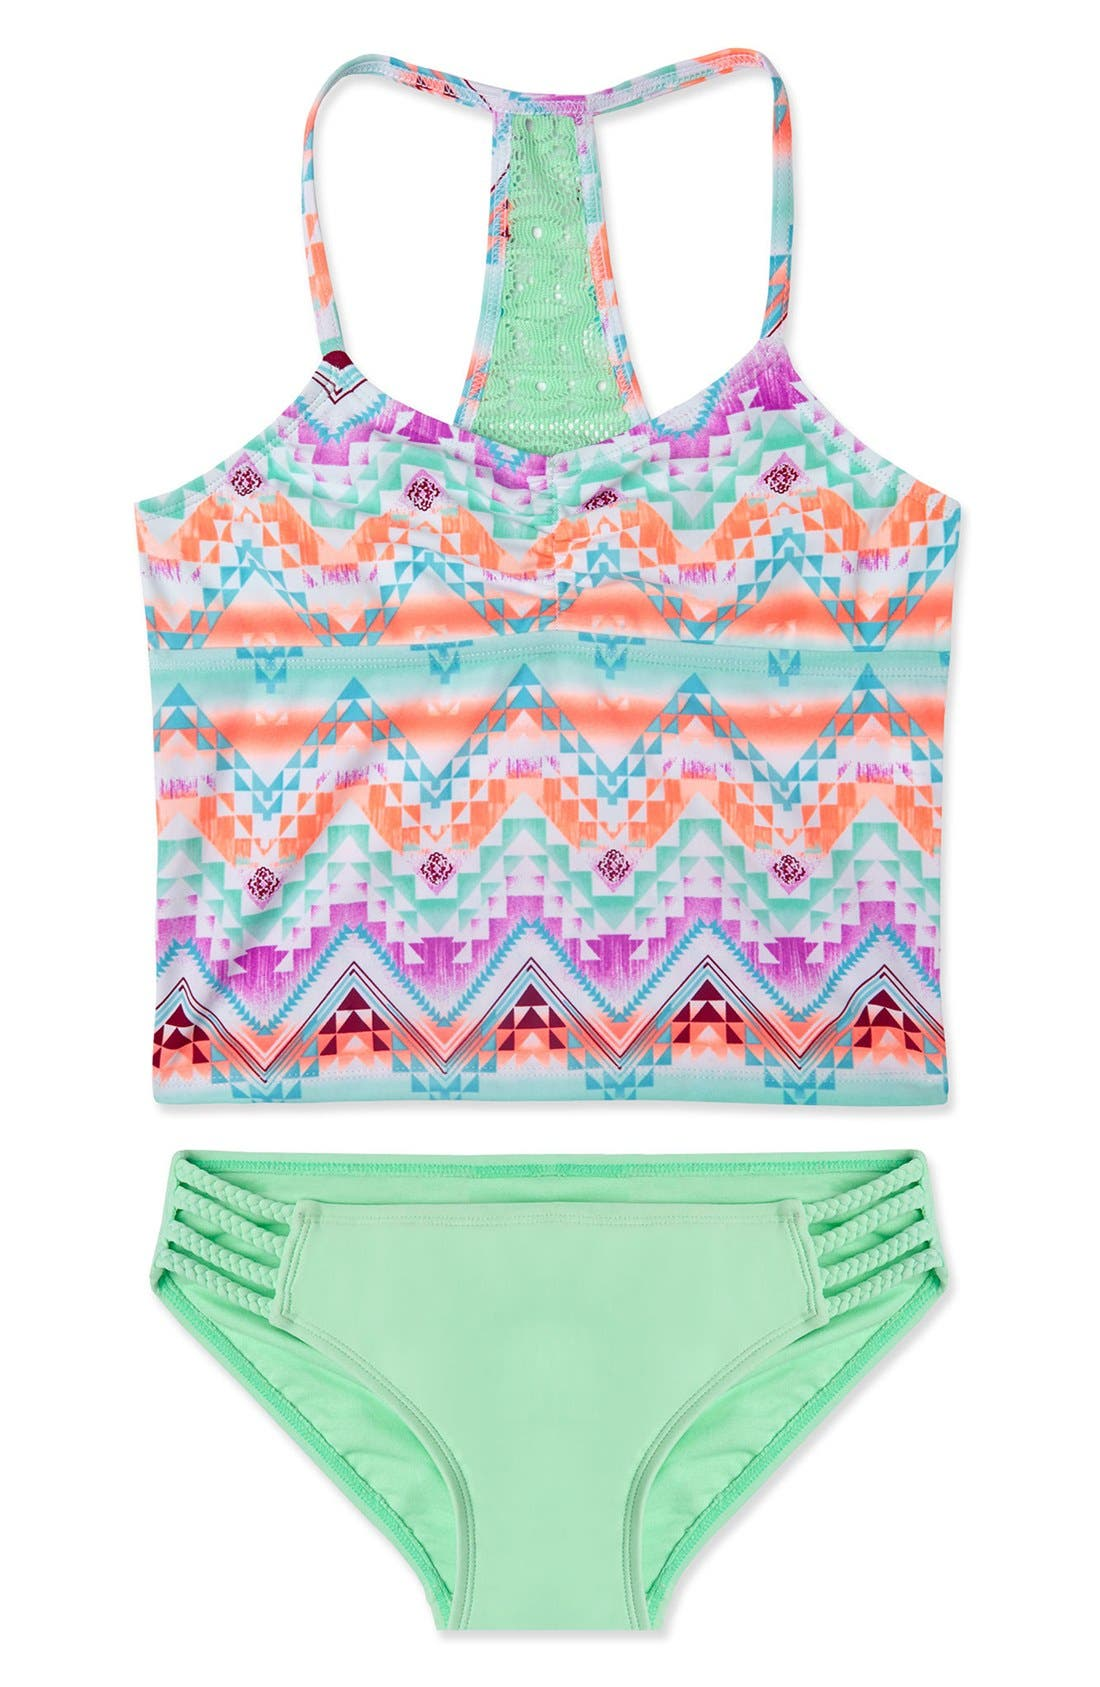 Main Image - Gossip Girl 'Desert Mirage' Two-Piece Swimsuit Set (Big Girls)